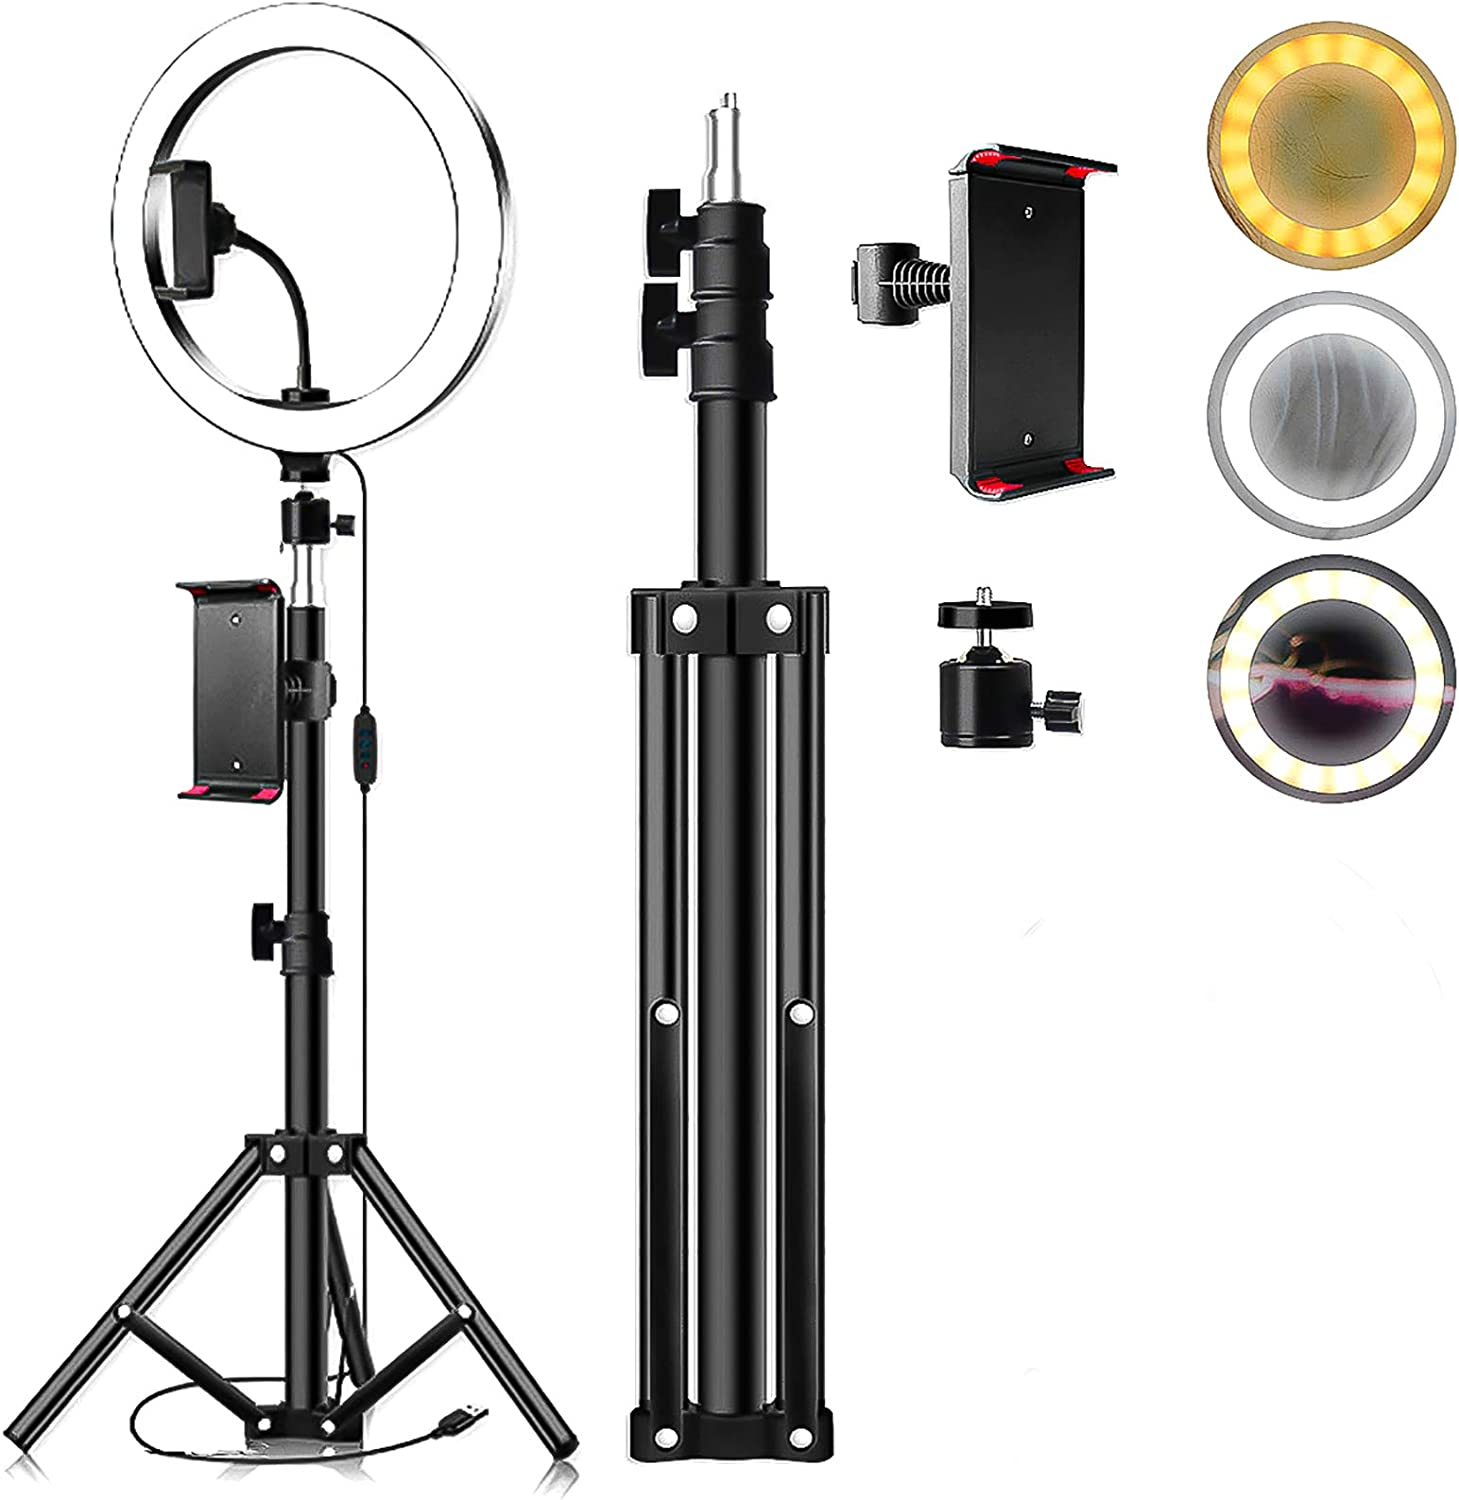 iFCOW LED Ring Light, 26cm LED Ring Light Dimmable LED Live Video Ring Light Set with Tripod Tablet Clip